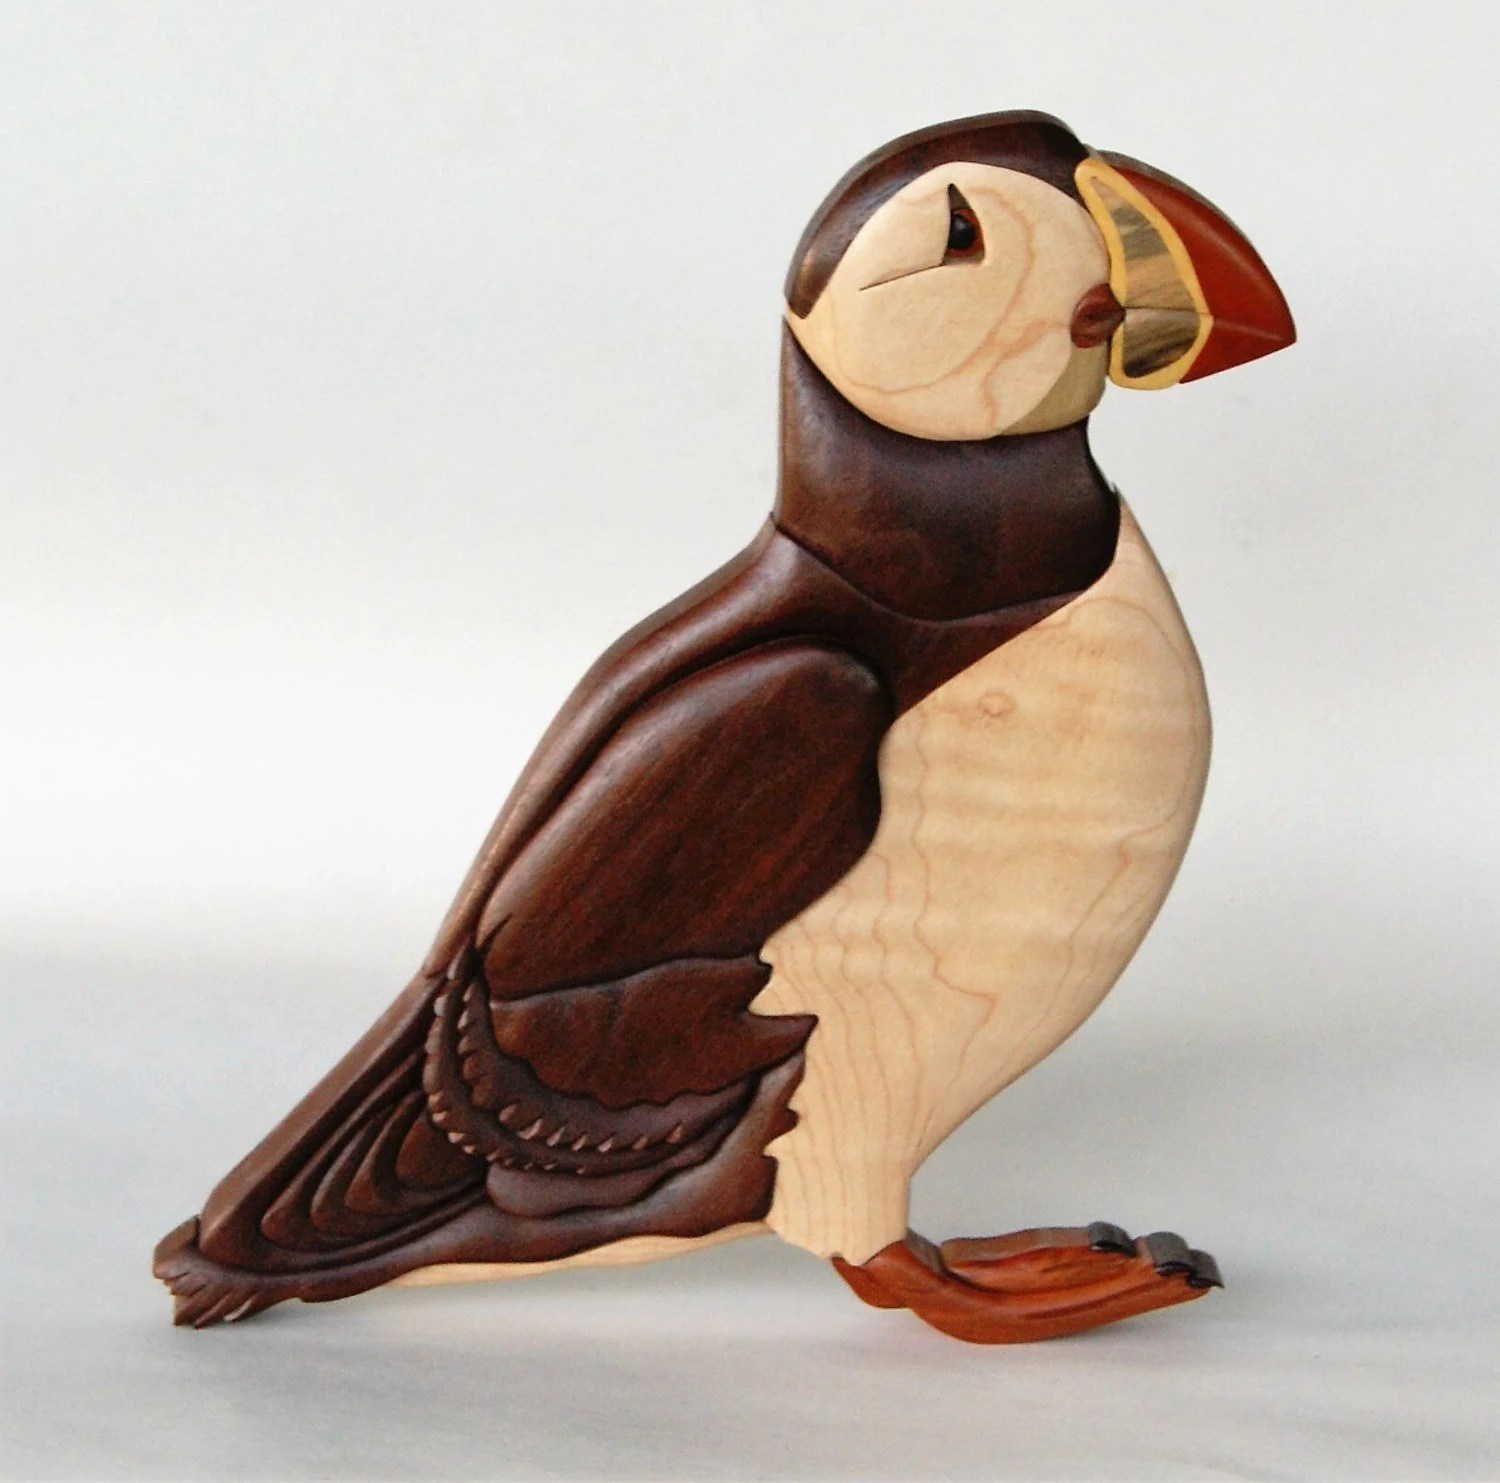 Arte En Madera Intarsia North Atlantic Puffin Intarsia Wall Hanging Wood Carving Wooden Bird Endangered Animal Wall Decor Home Decoration Wooden Intarsia Art